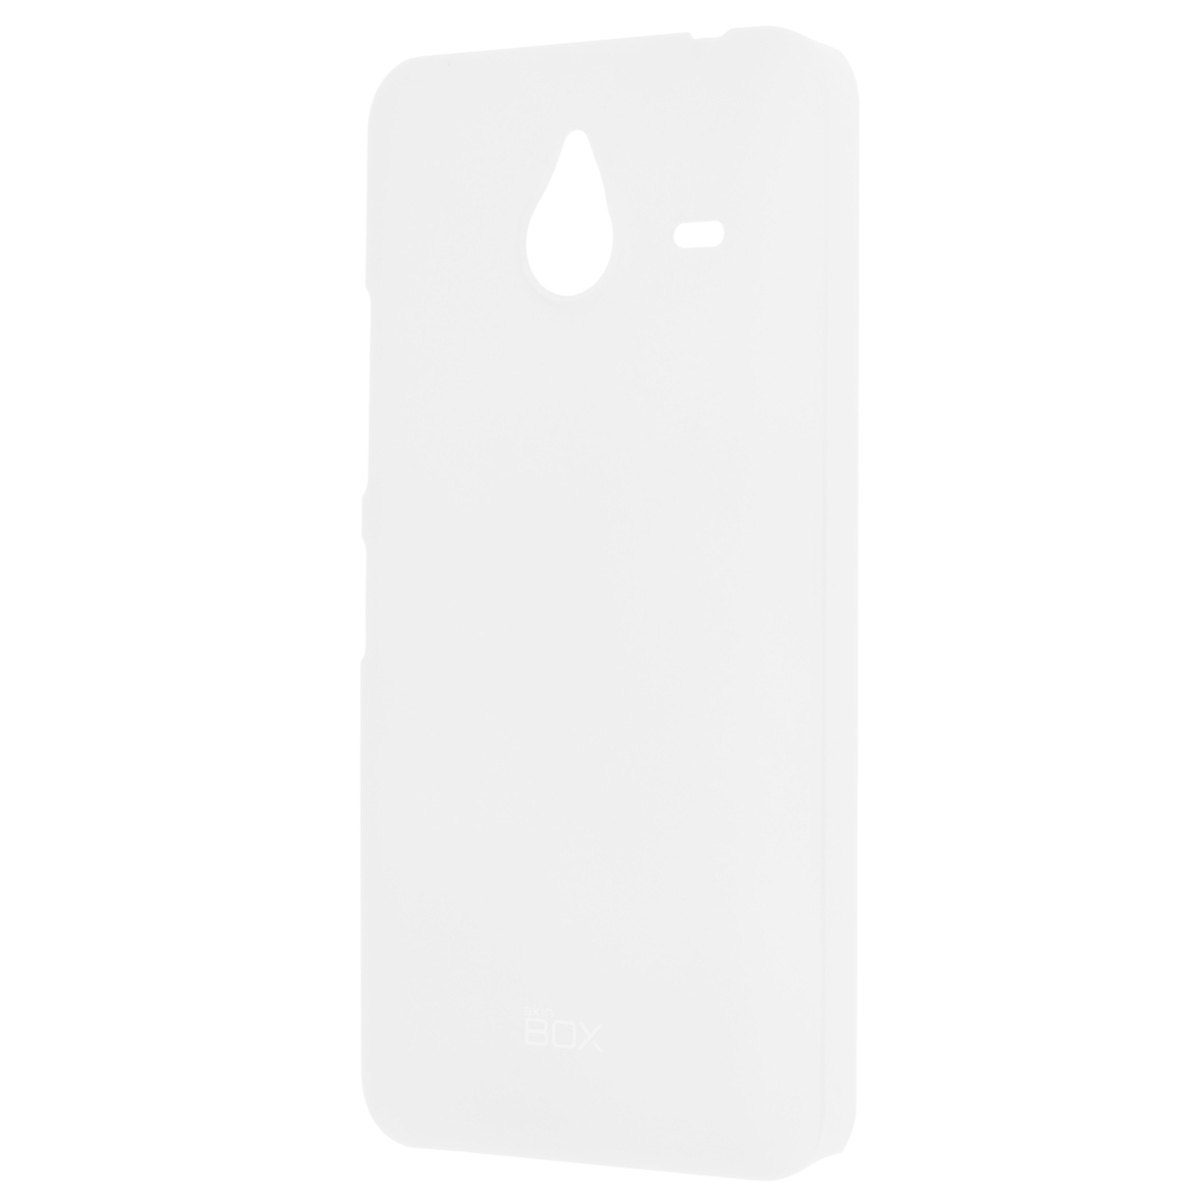 Фото Skinbox Shield 4People чехол для Microsoft Lumia 640XL, White. Купить  в РФ